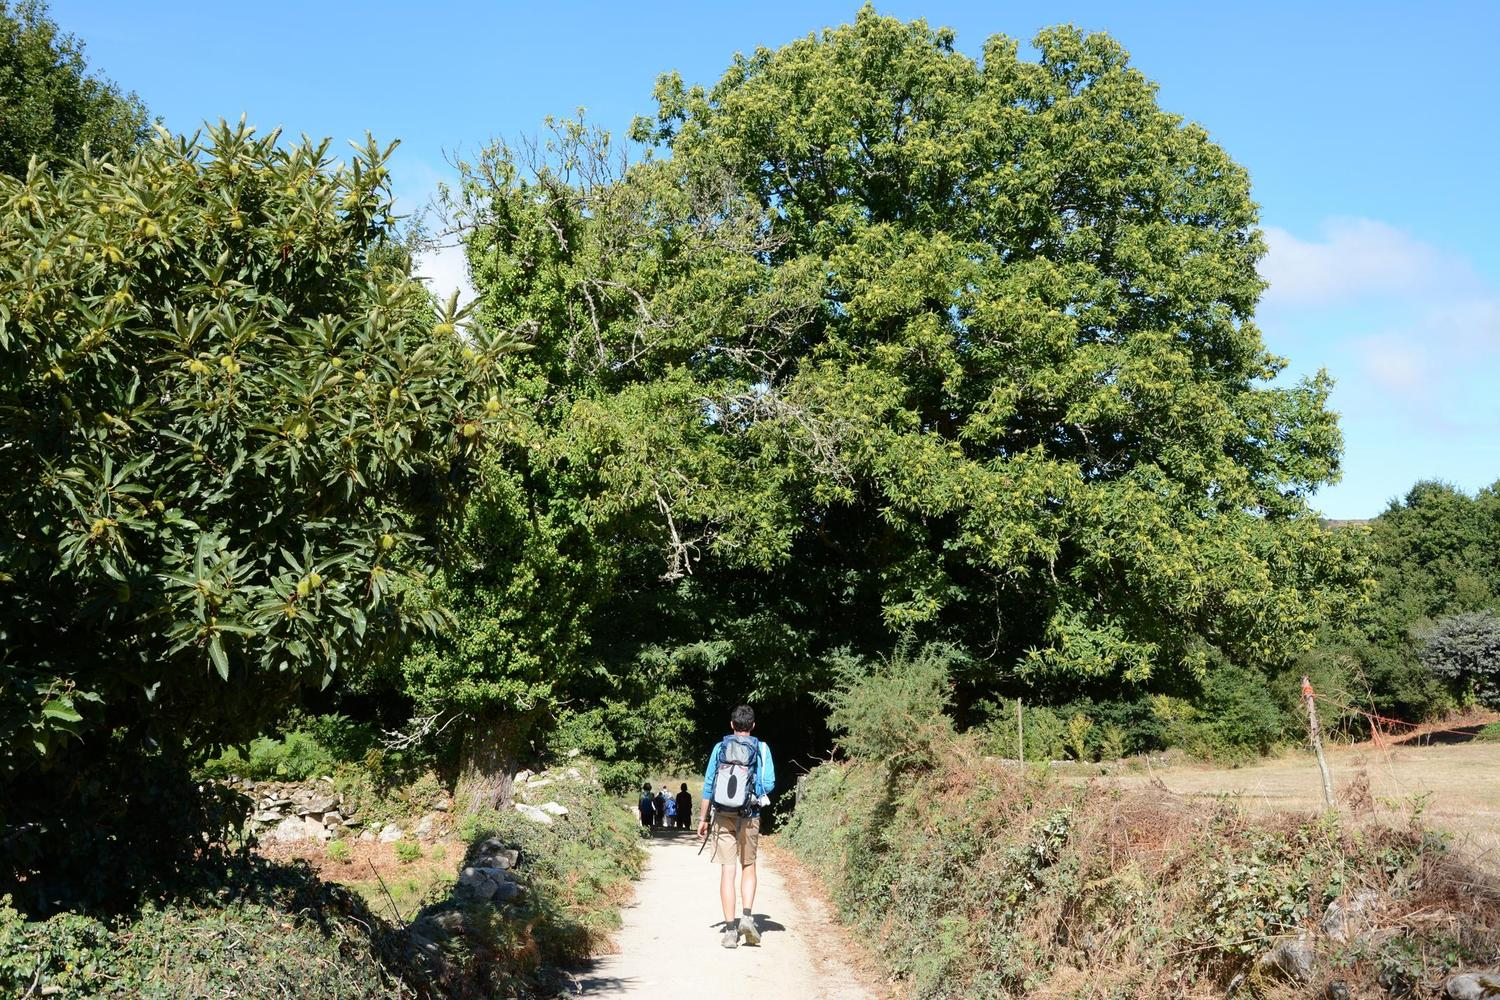 The last 100km of the Camino de Santiago